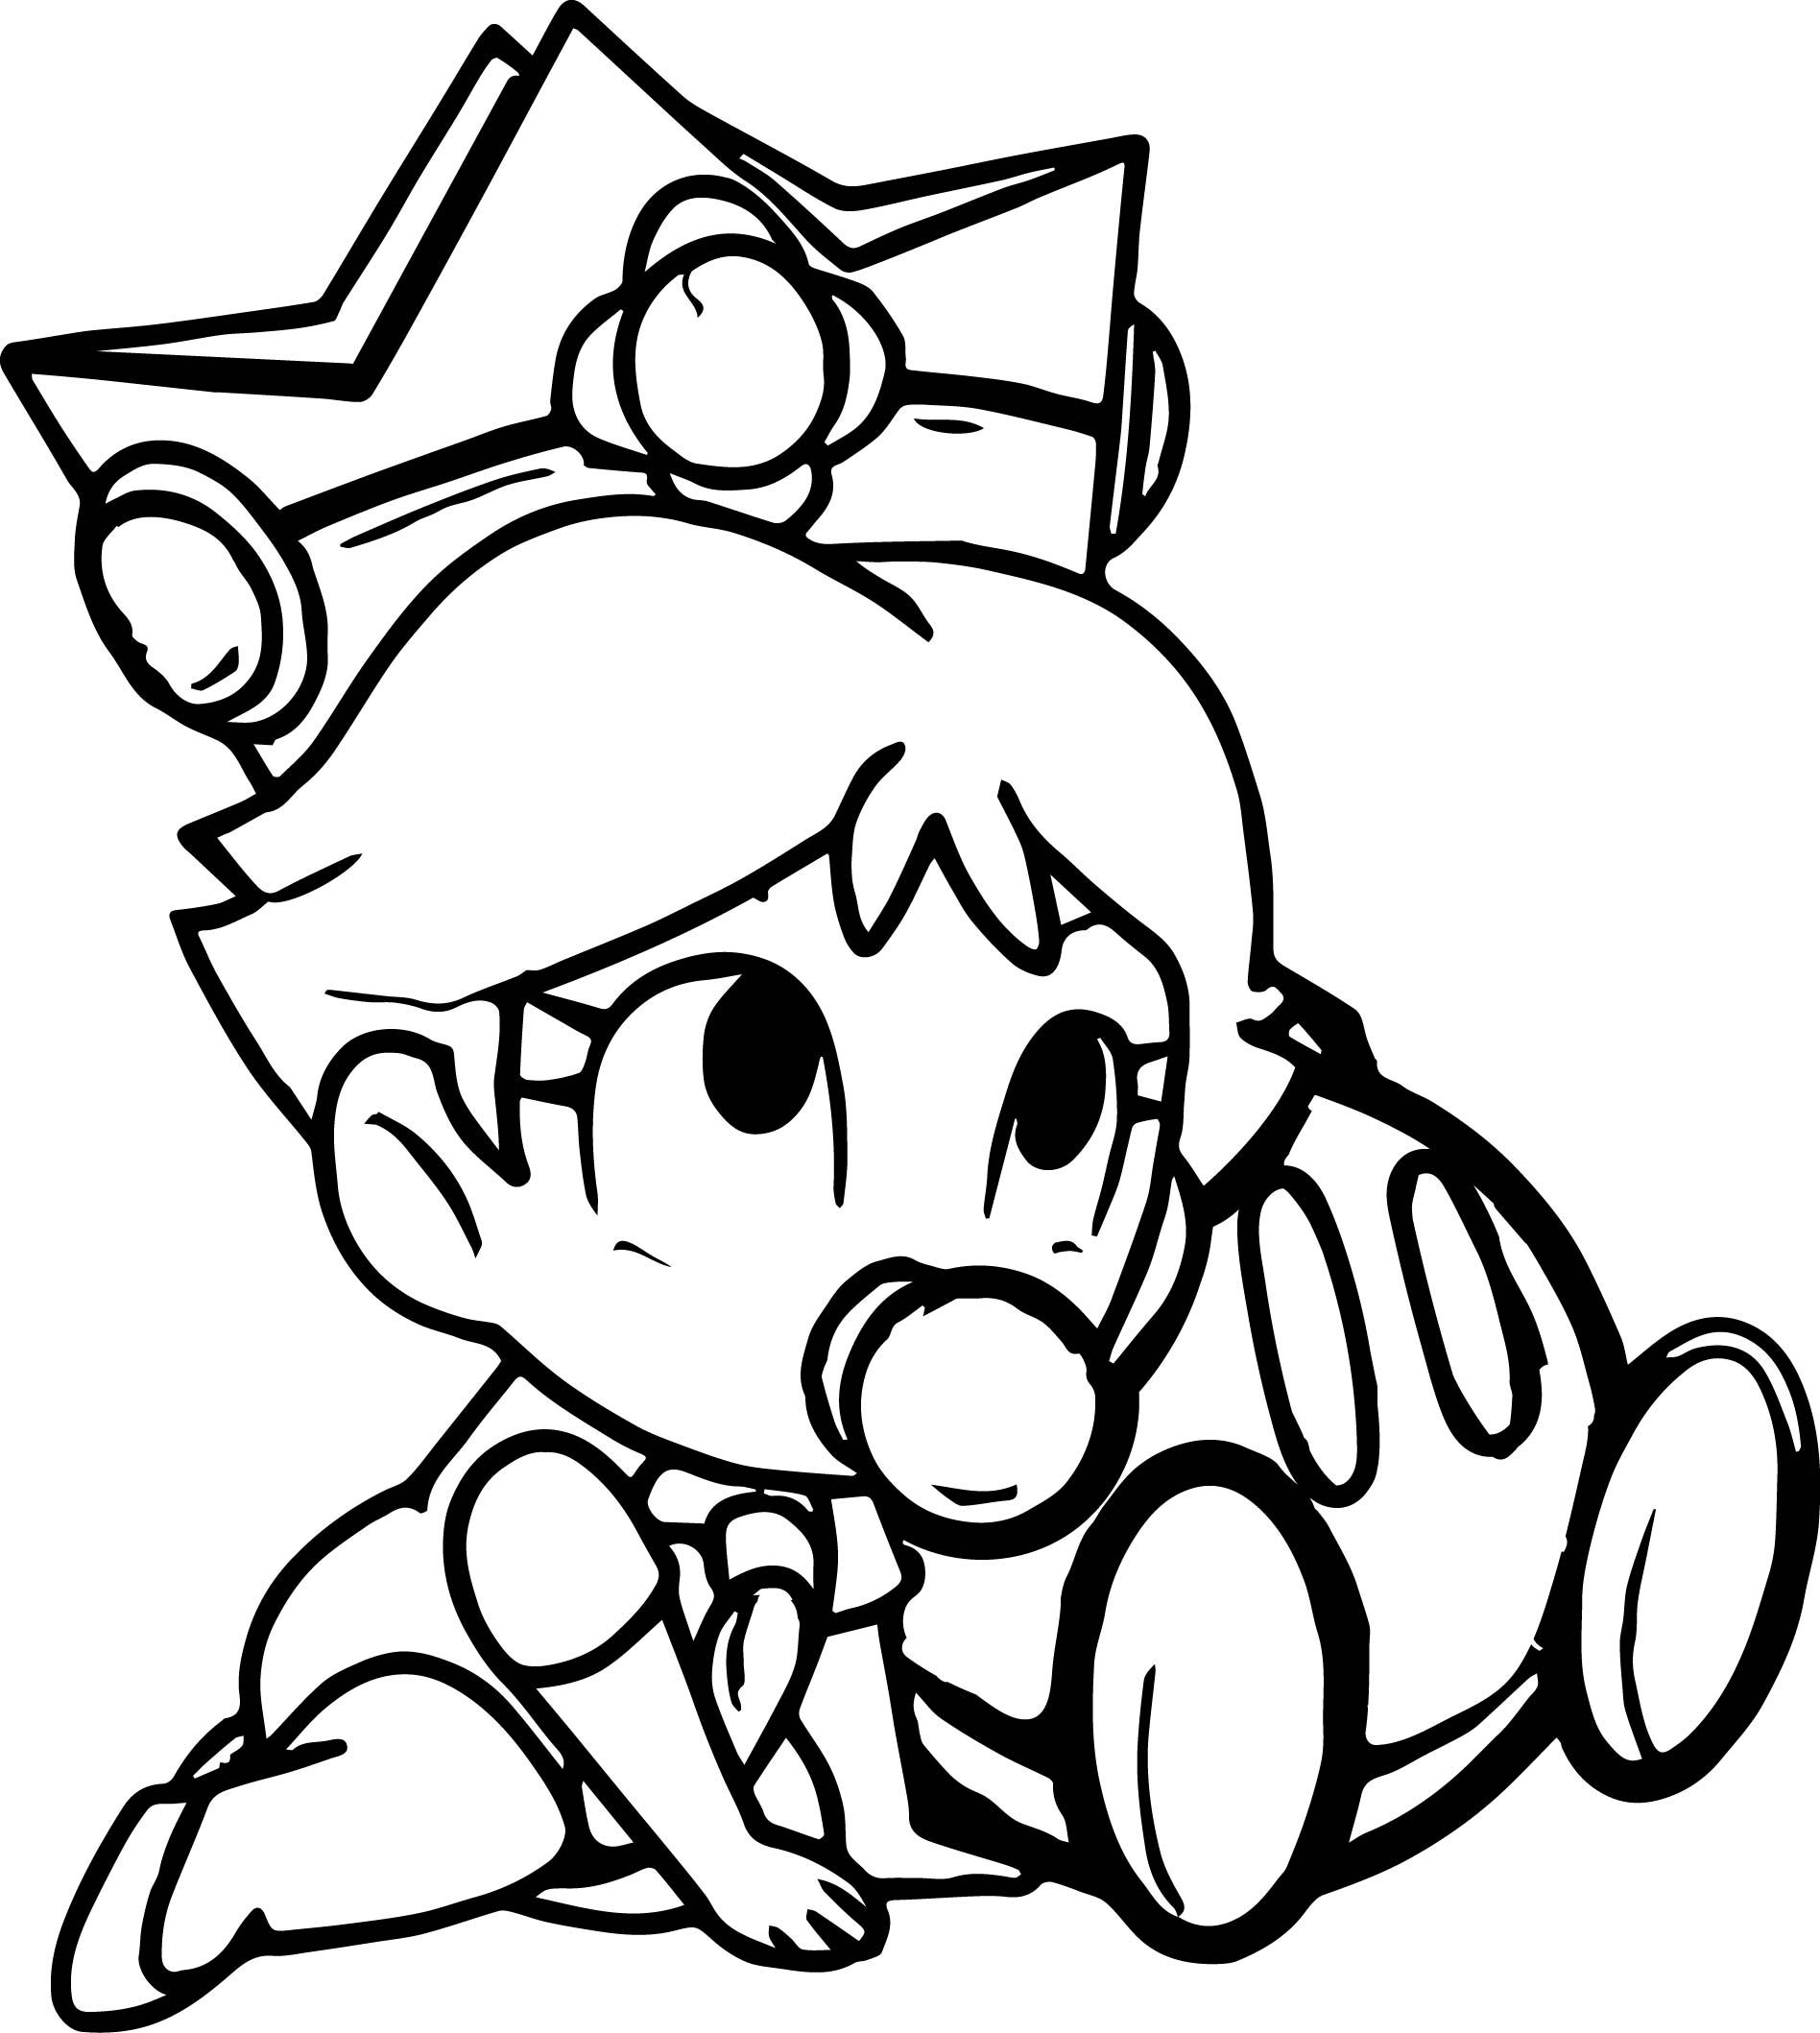 Cool Baby Daisy Peach Daisy And Rosalina As Babies Coloring Page Mario Coloring Pages Avengers Coloring Pages Baby Coloring Pages